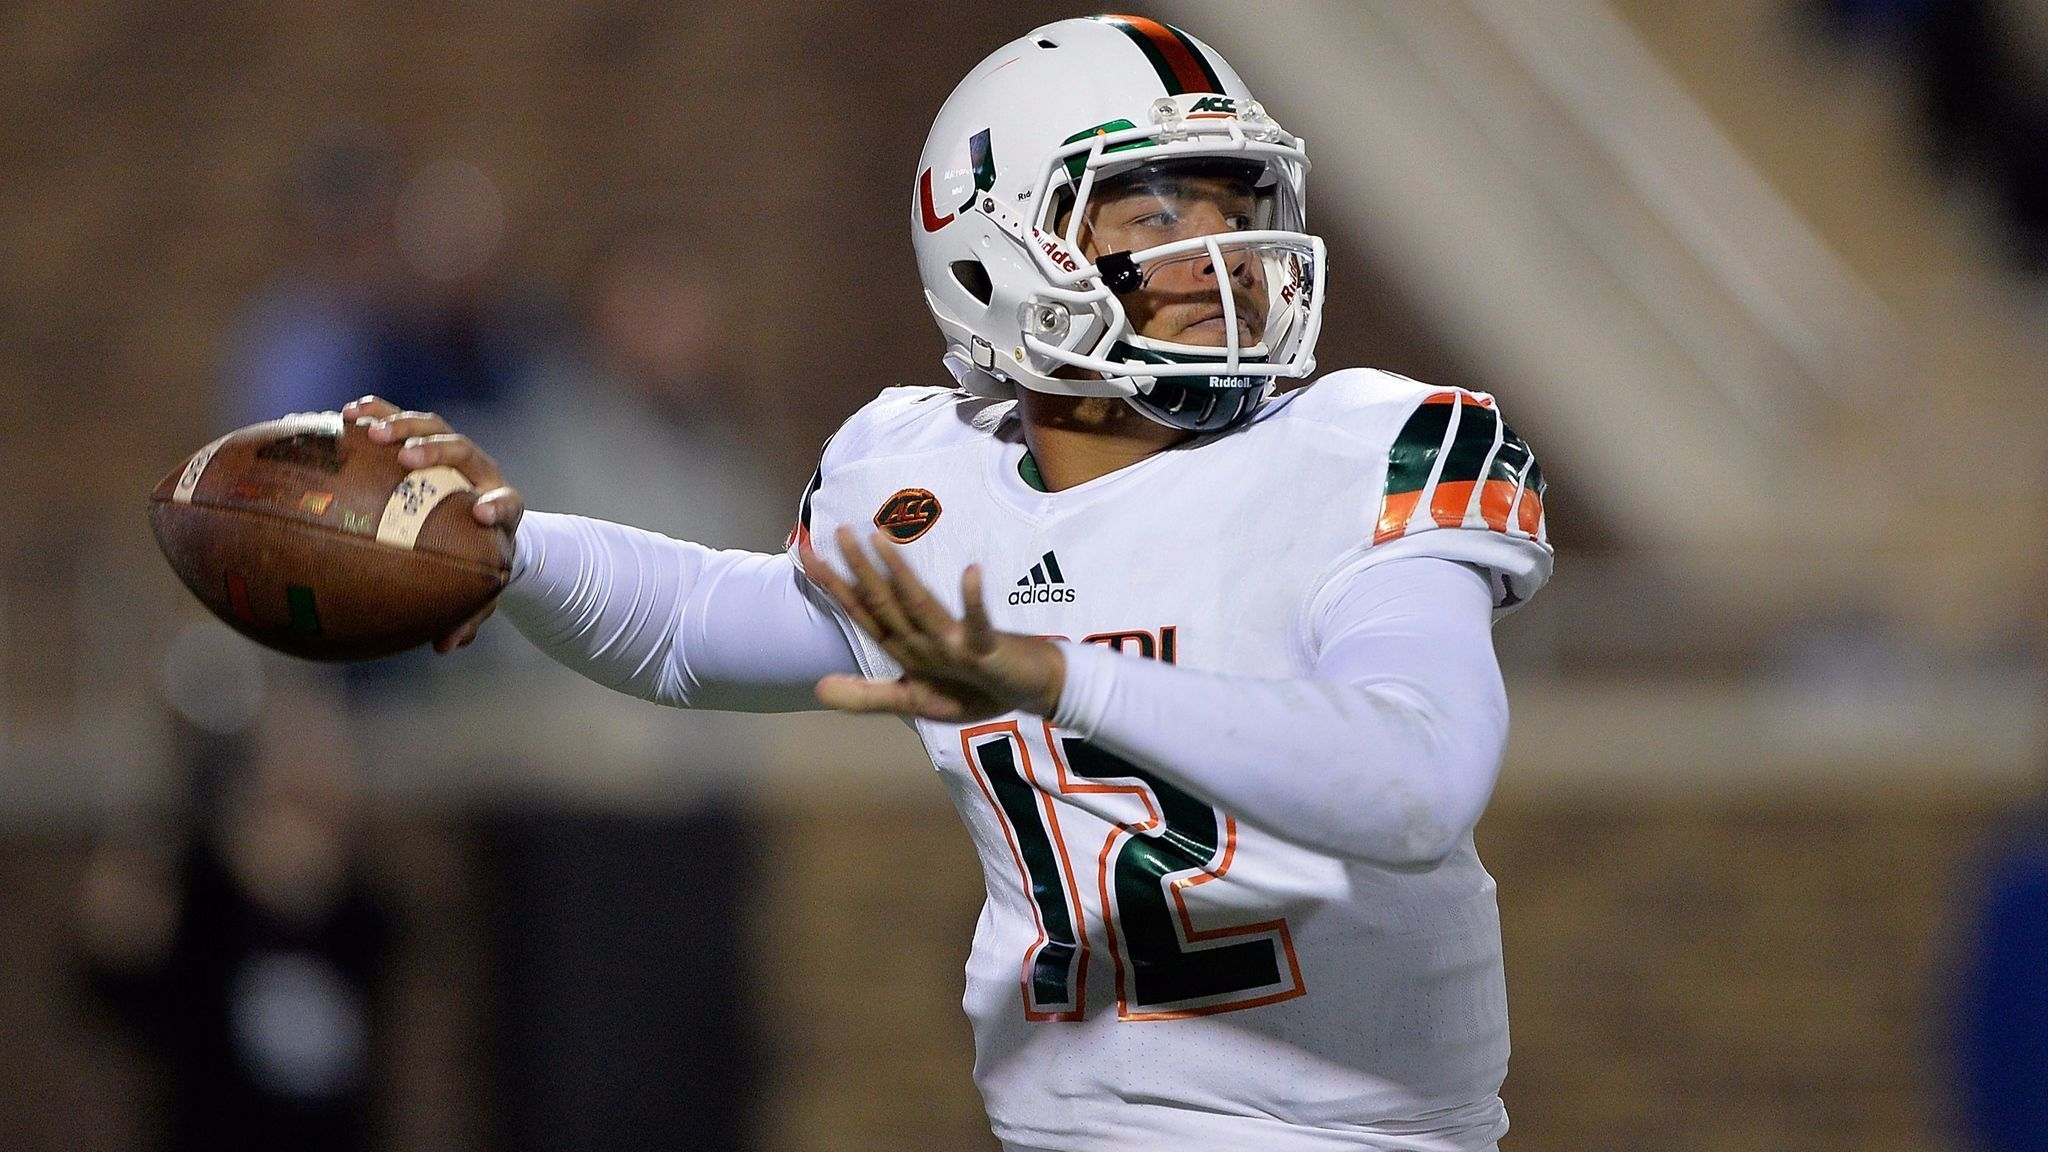 Miami Hurricanes coach Mark Richt names redshirt junior Malik Rosier starting QB